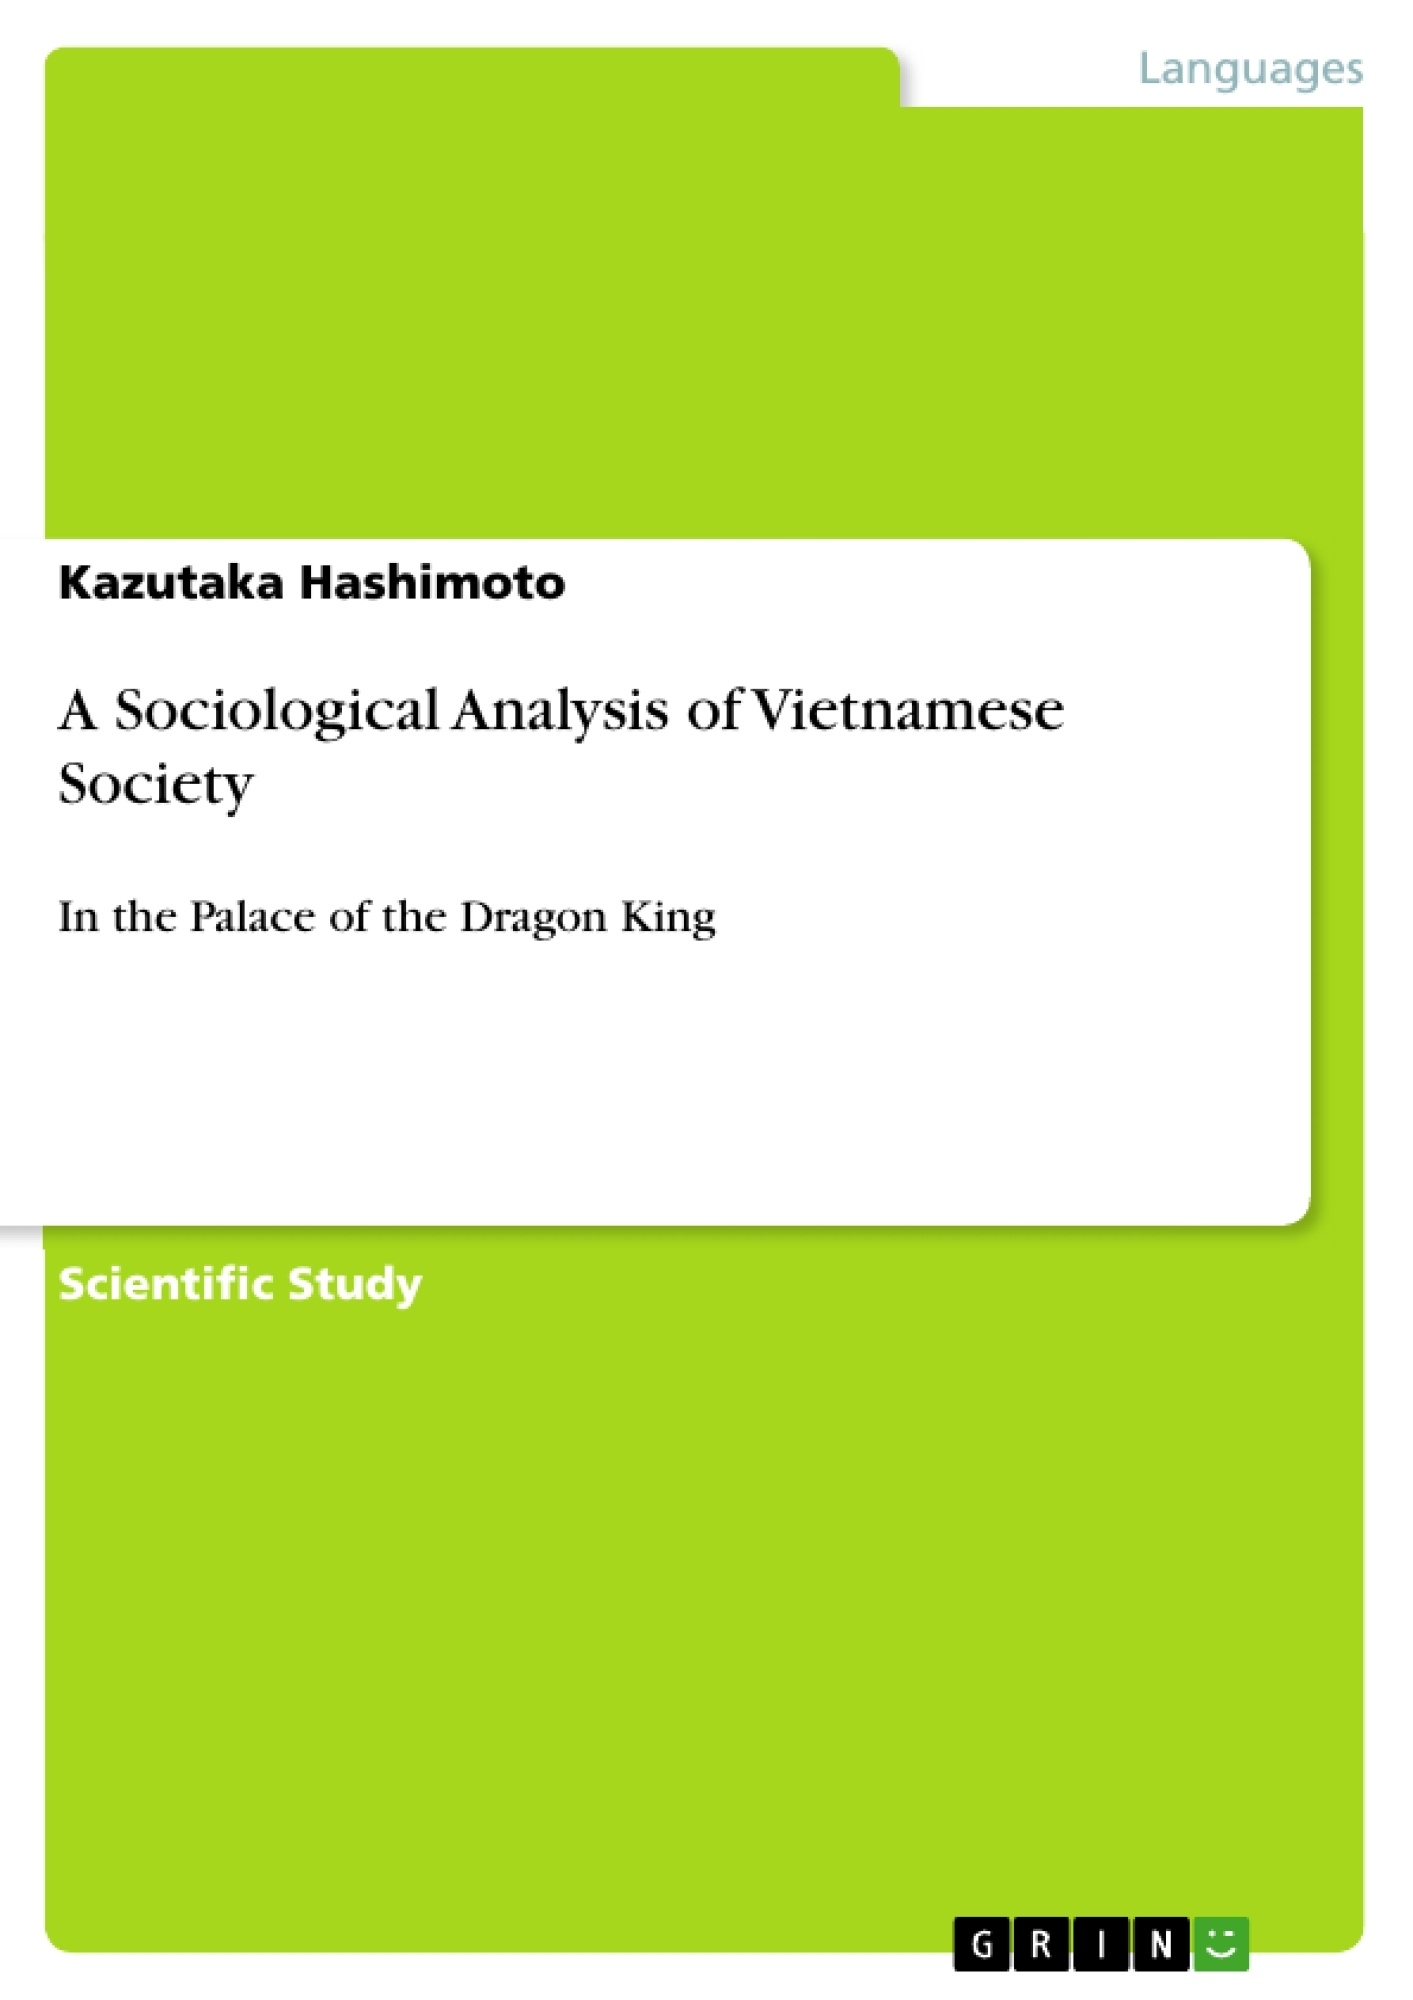 Title: A Sociological Analysis of Vietnamese Society